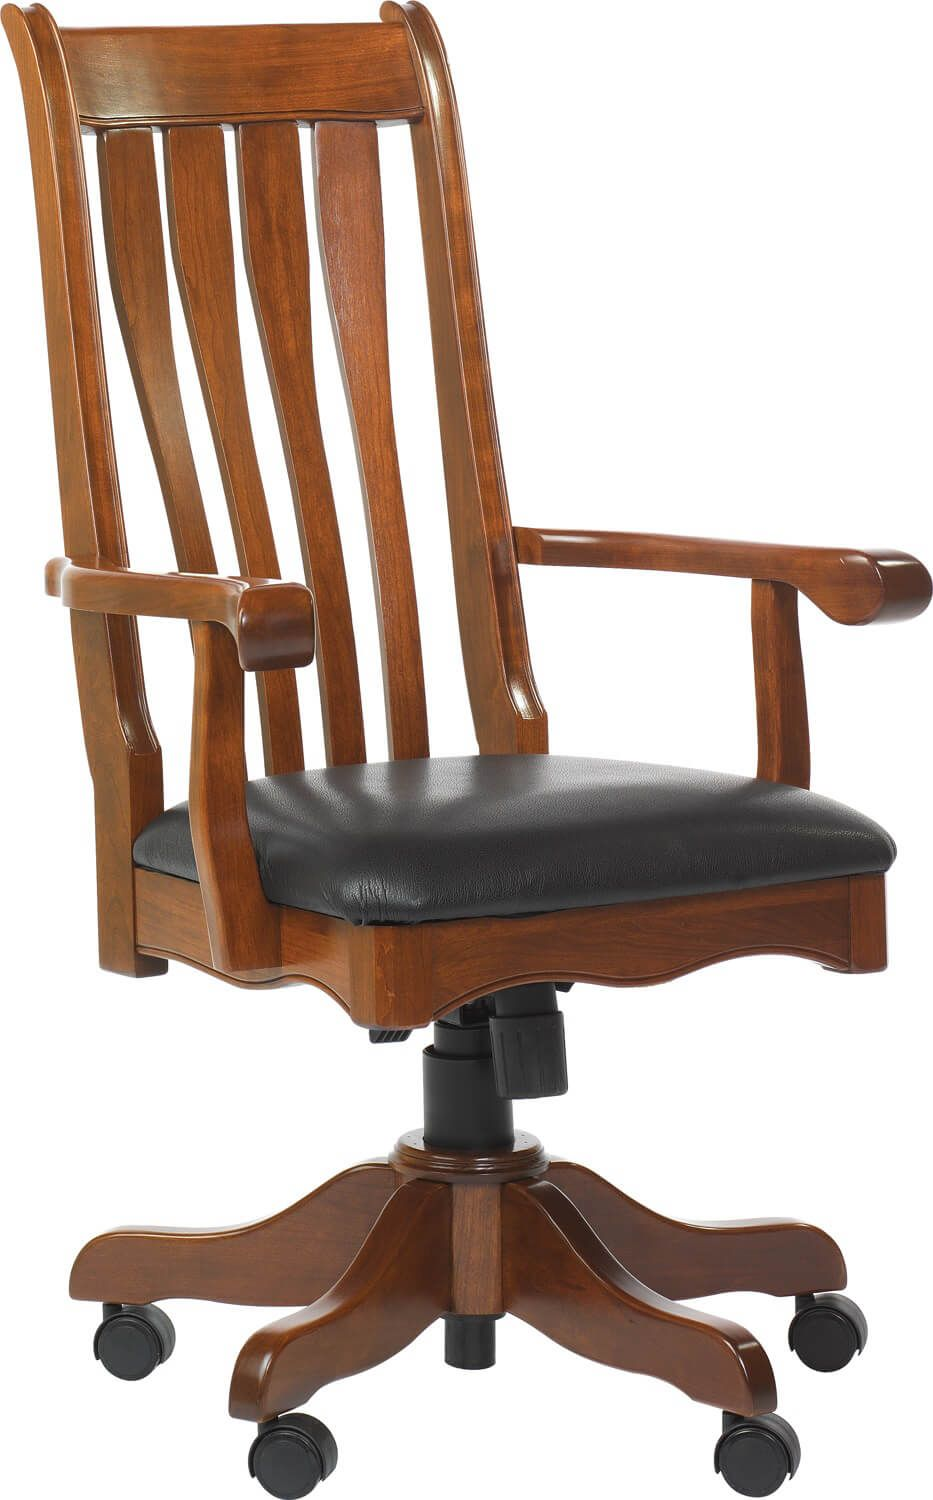 Hanson Desk Chair in Cherry